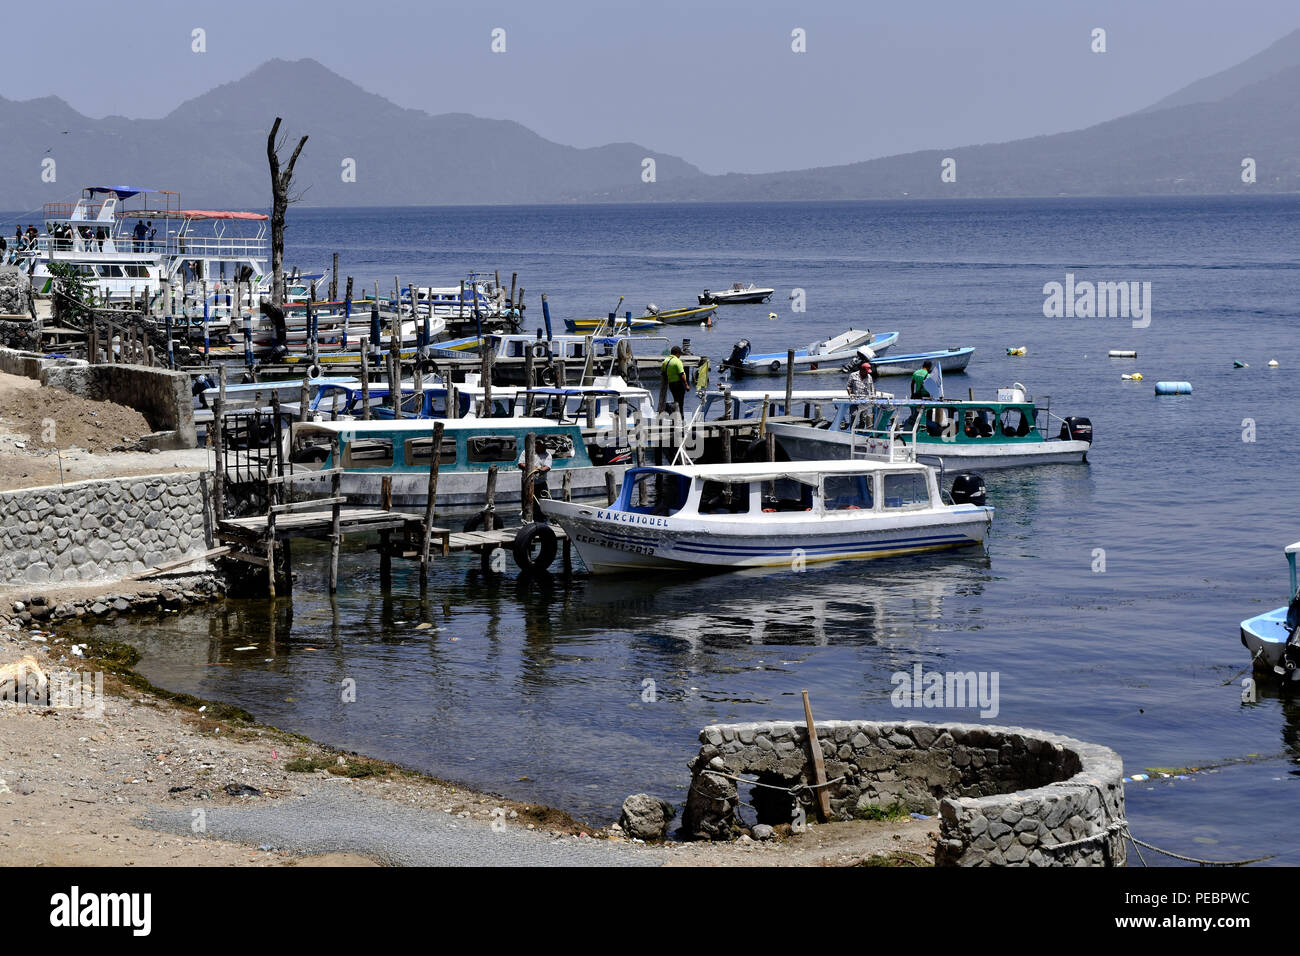 Tourism in lake Panajachel where you can cross by boat to the cities on the volcanoes. 14 July 2018 - Stock Image